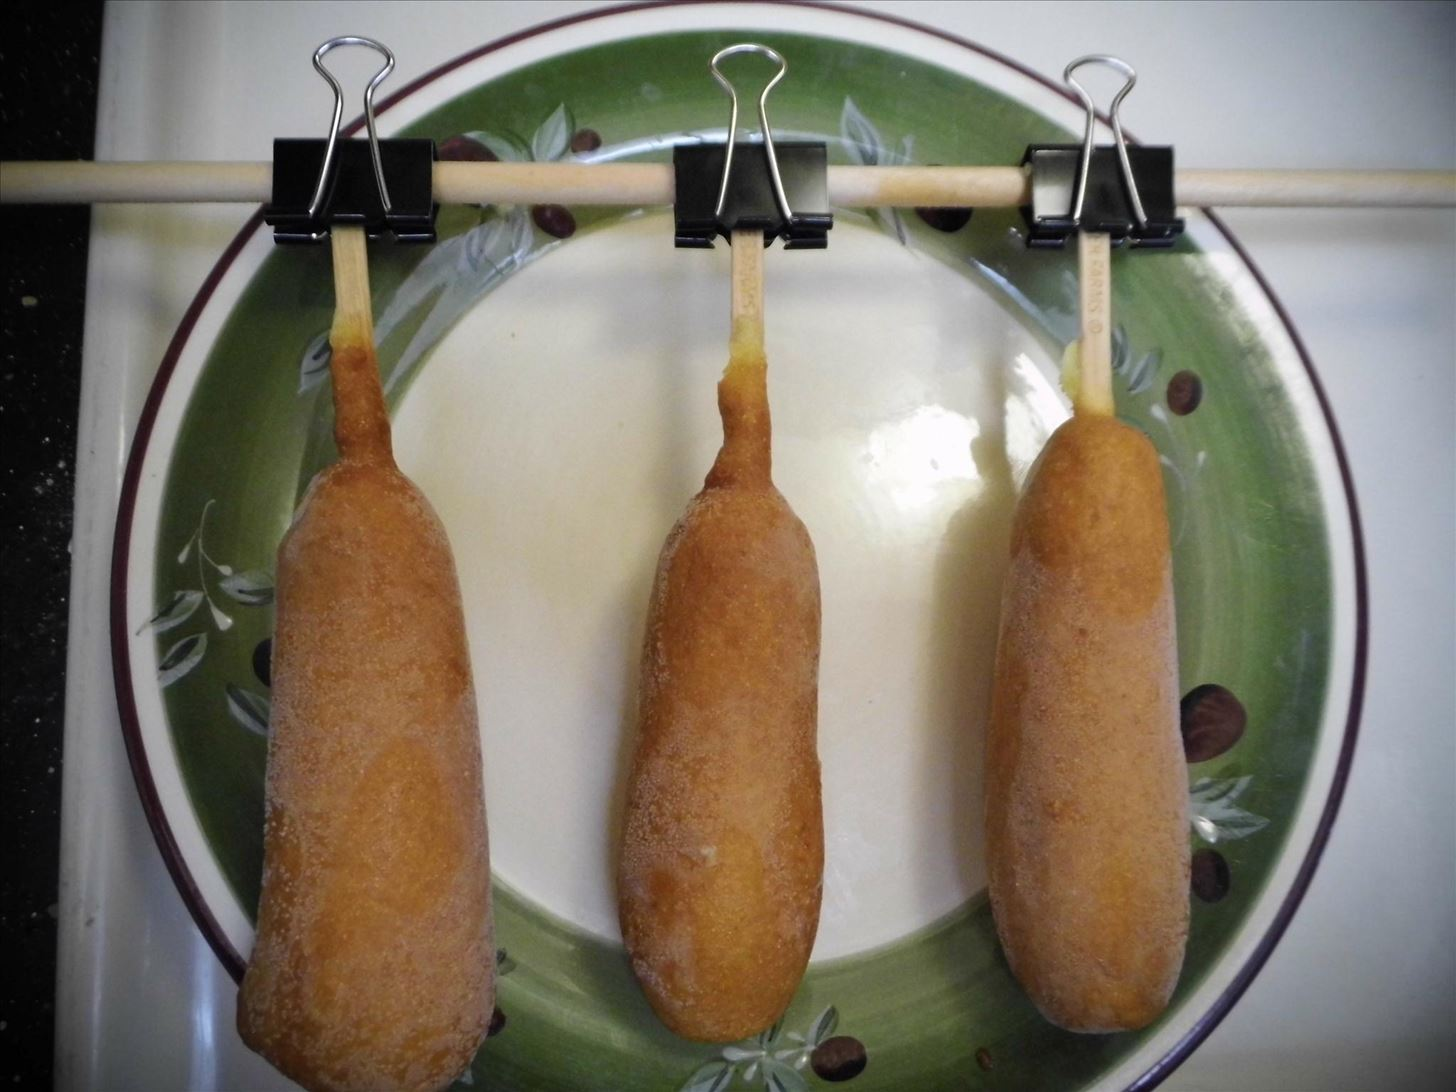 How to Build a Corn Dog Rig for Easy Deep Frying